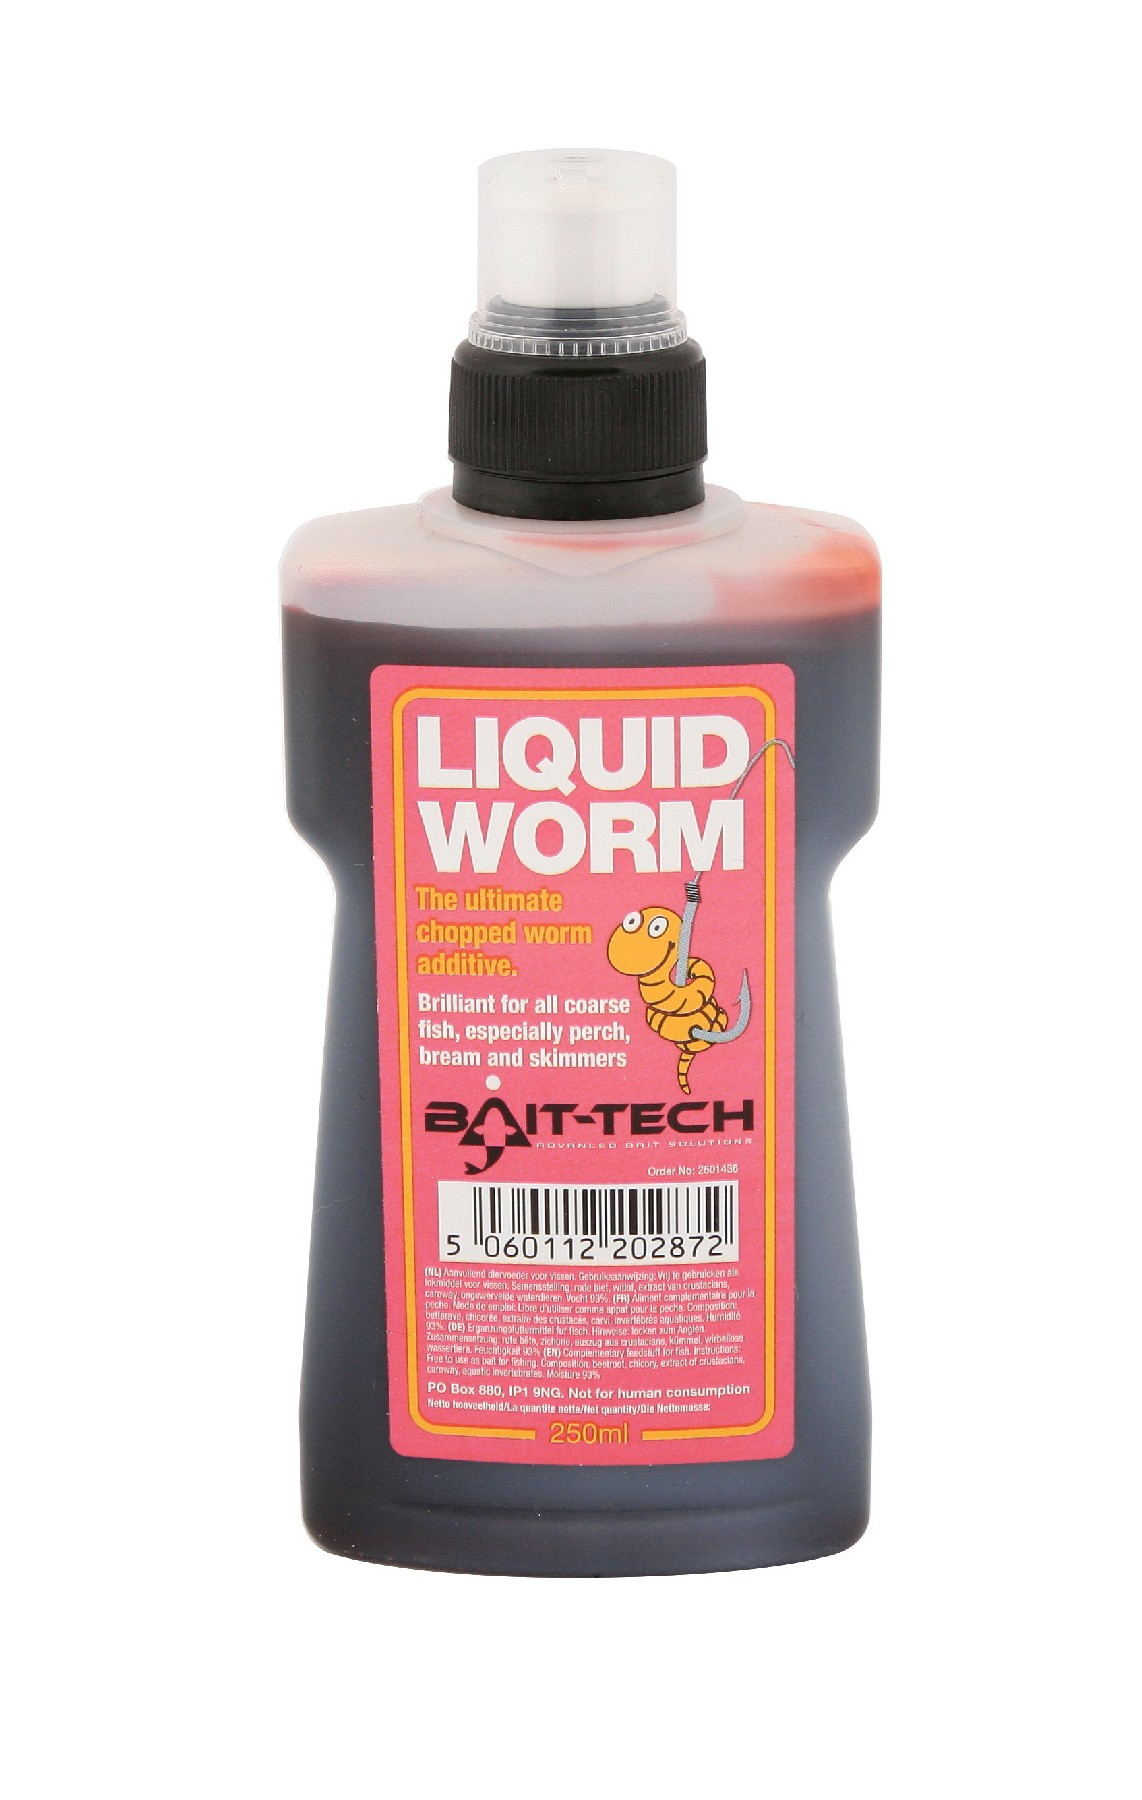 BAIT-TECH Tekutá esencia Liquid Worm 250ml